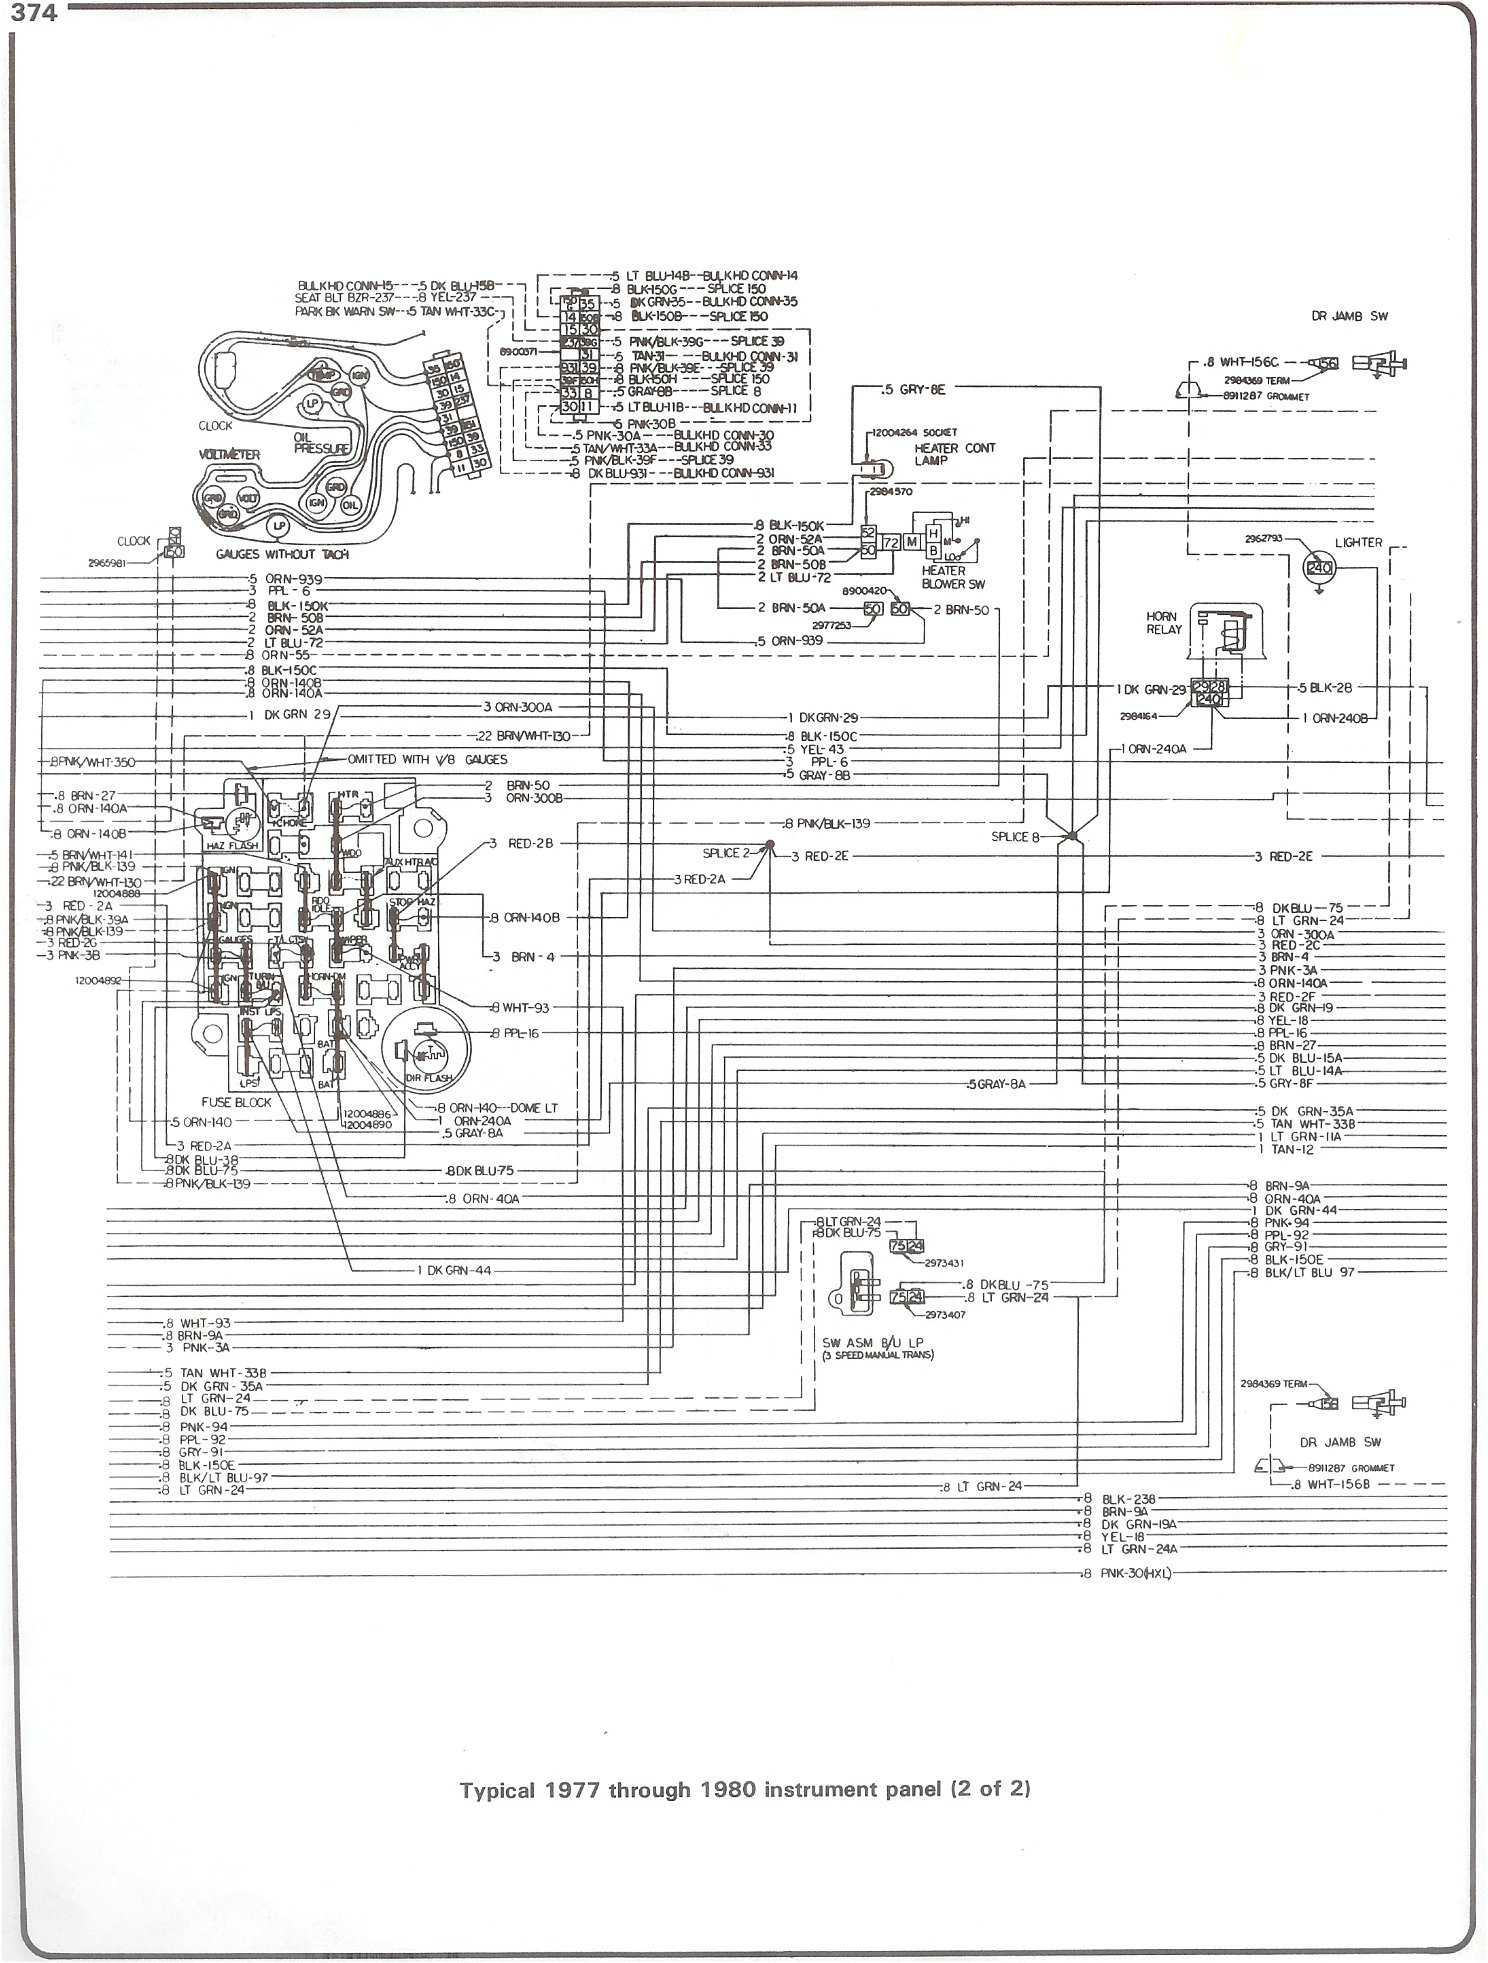 1974 Chevrolet K10 Wiring Diagram Archive Of Automotive Wiring 1974  Chevrolet C10 Wiring Diagram 1974 Chevrolet Wiring Diagram